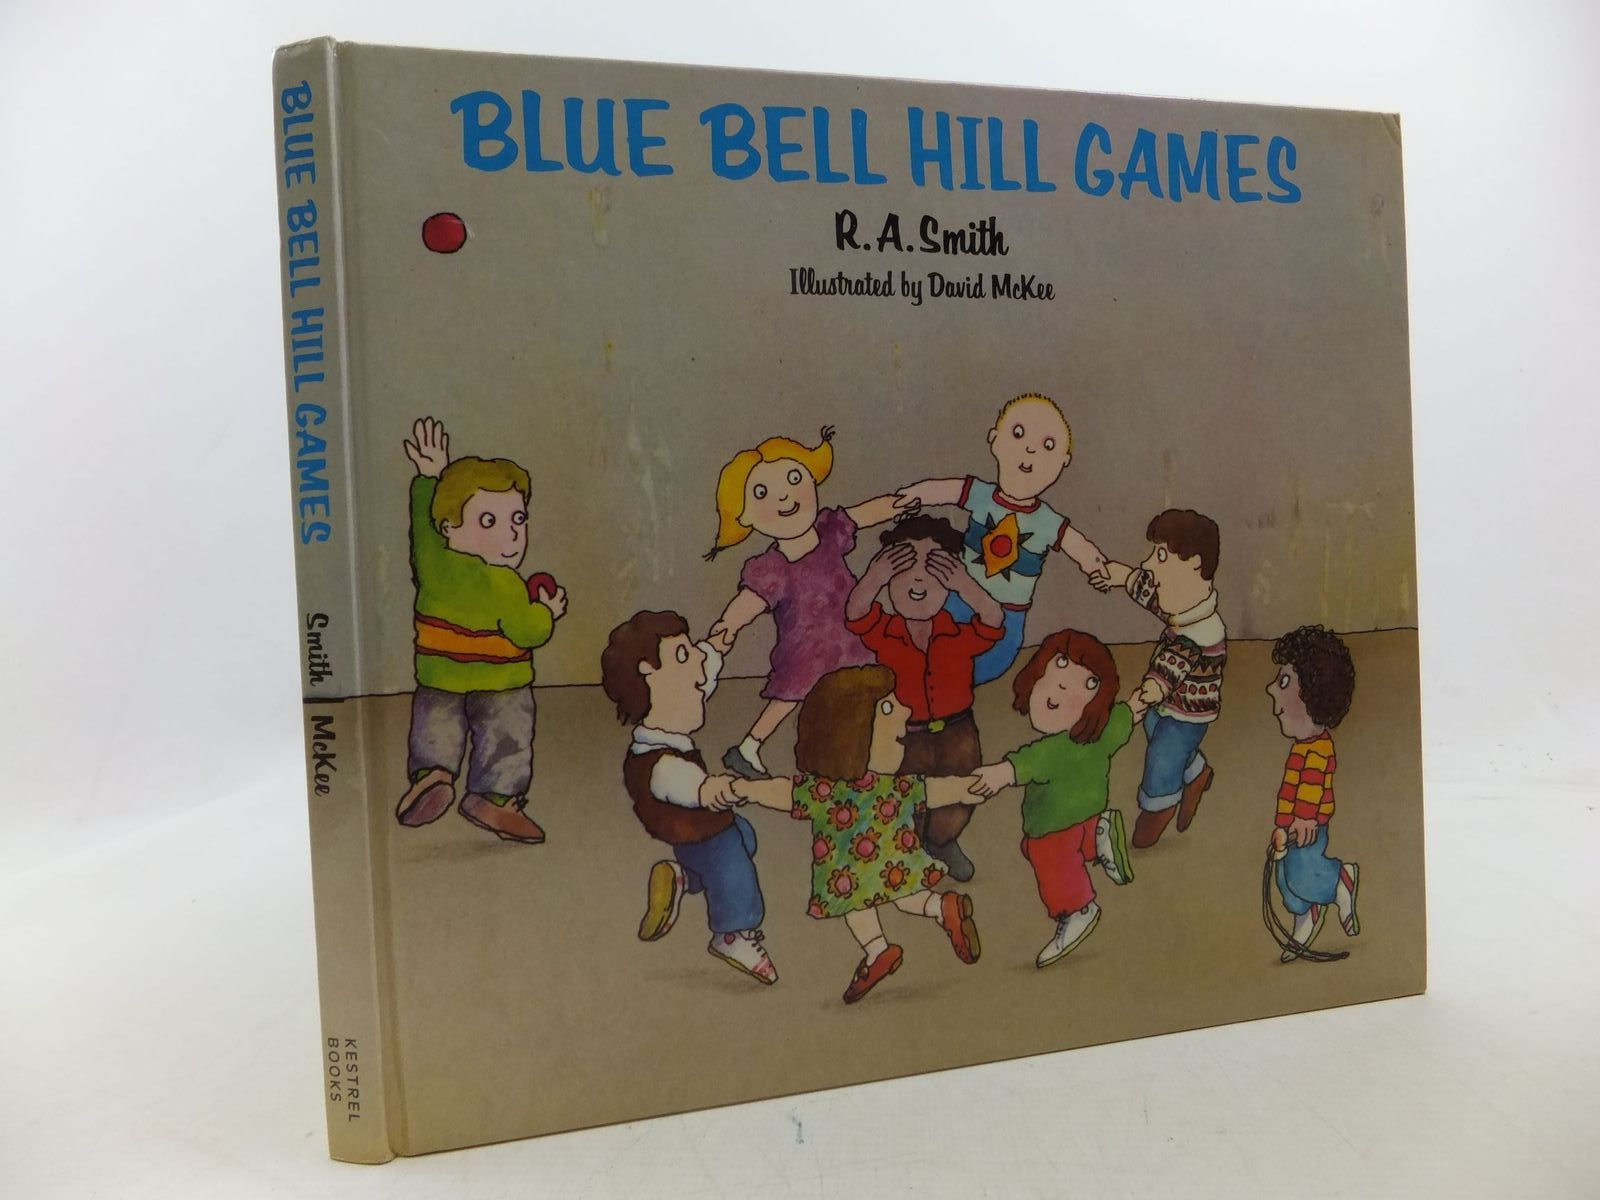 Photo of BLUE BELL HILL GAMES written by Smith, R.A. illustrated by McKee, David published by Kestrel Books (STOCK CODE: 1710110)  for sale by Stella & Rose's Books